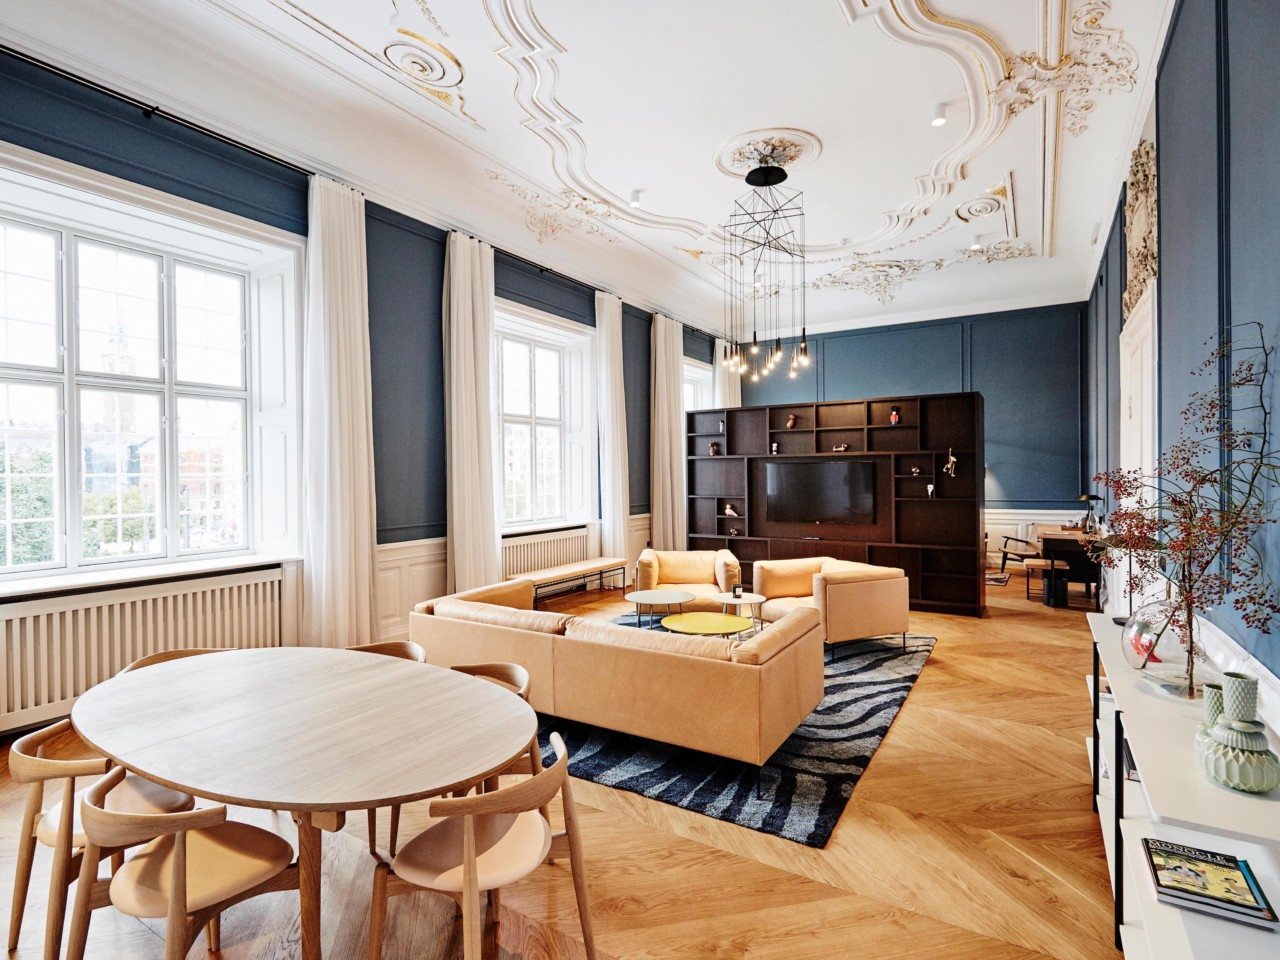 Contemporary design meets classic design at the nobis for Contemporary hotel design